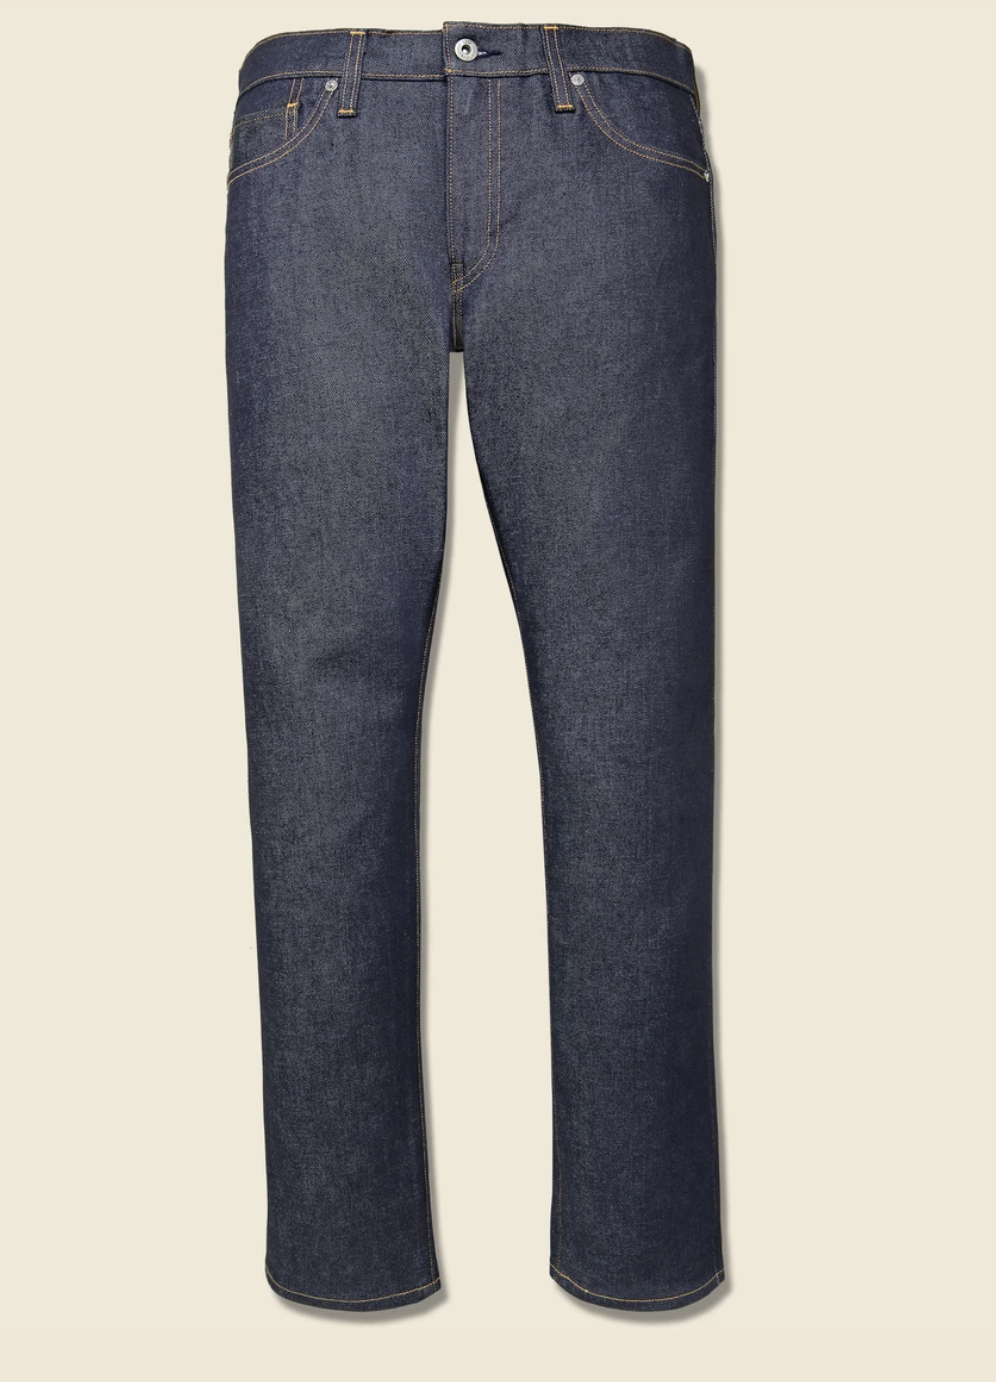 Levis Made & Crafted 511 Slim Fit ($188)